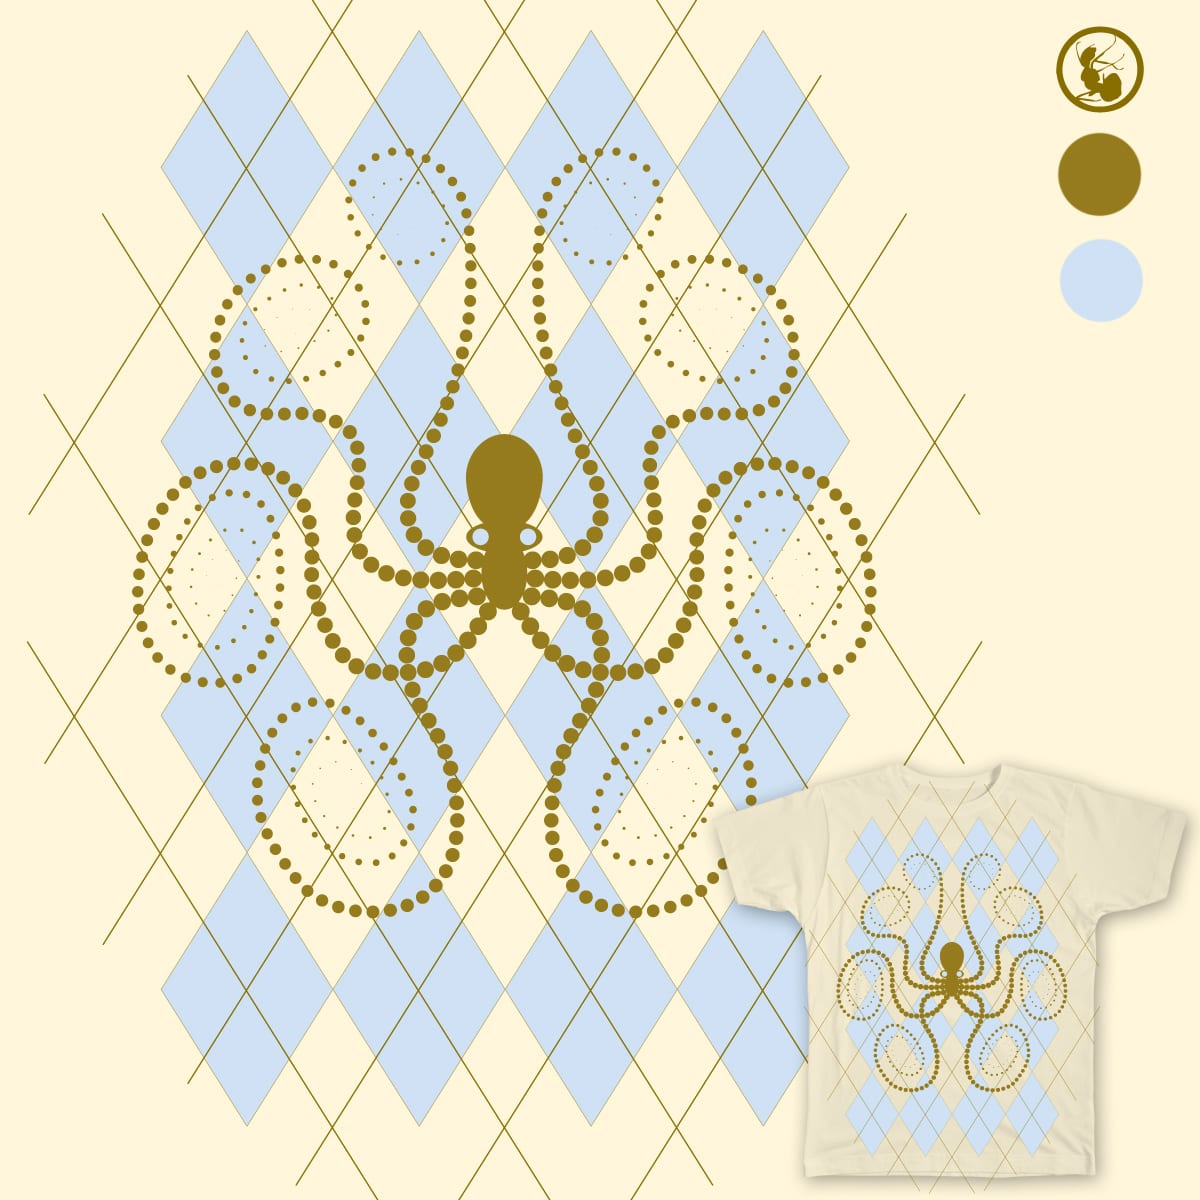 Argylopus by AuntSpray on Threadless